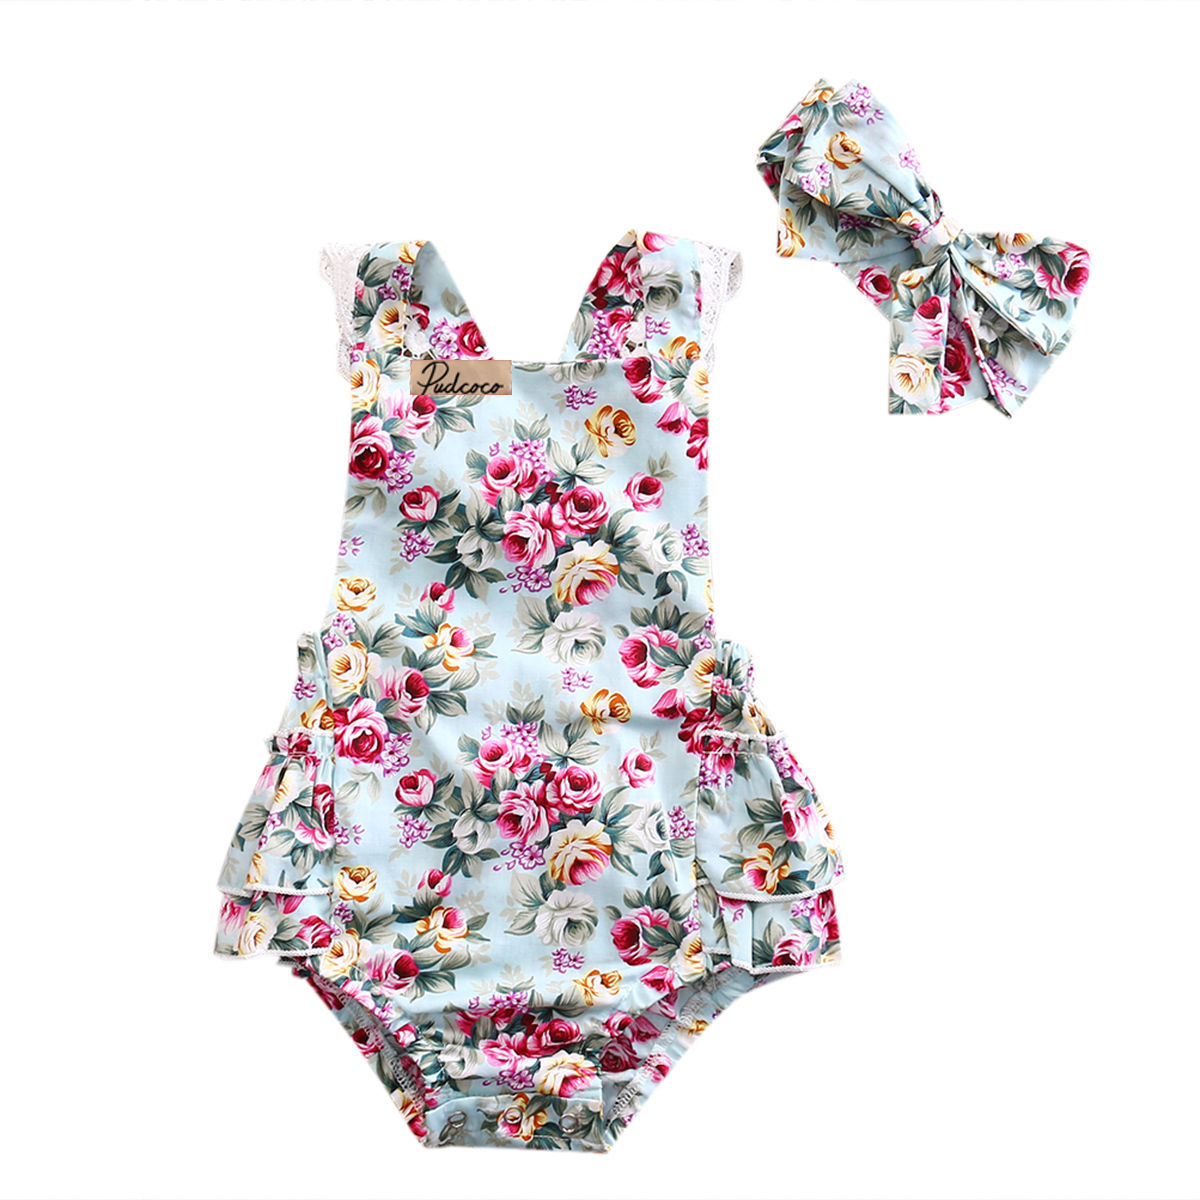 Summer Newest Newborn Kid Baby Girl Clothes Floral Sleeveless Cotton Outfits Set Lace Romper Playsuit